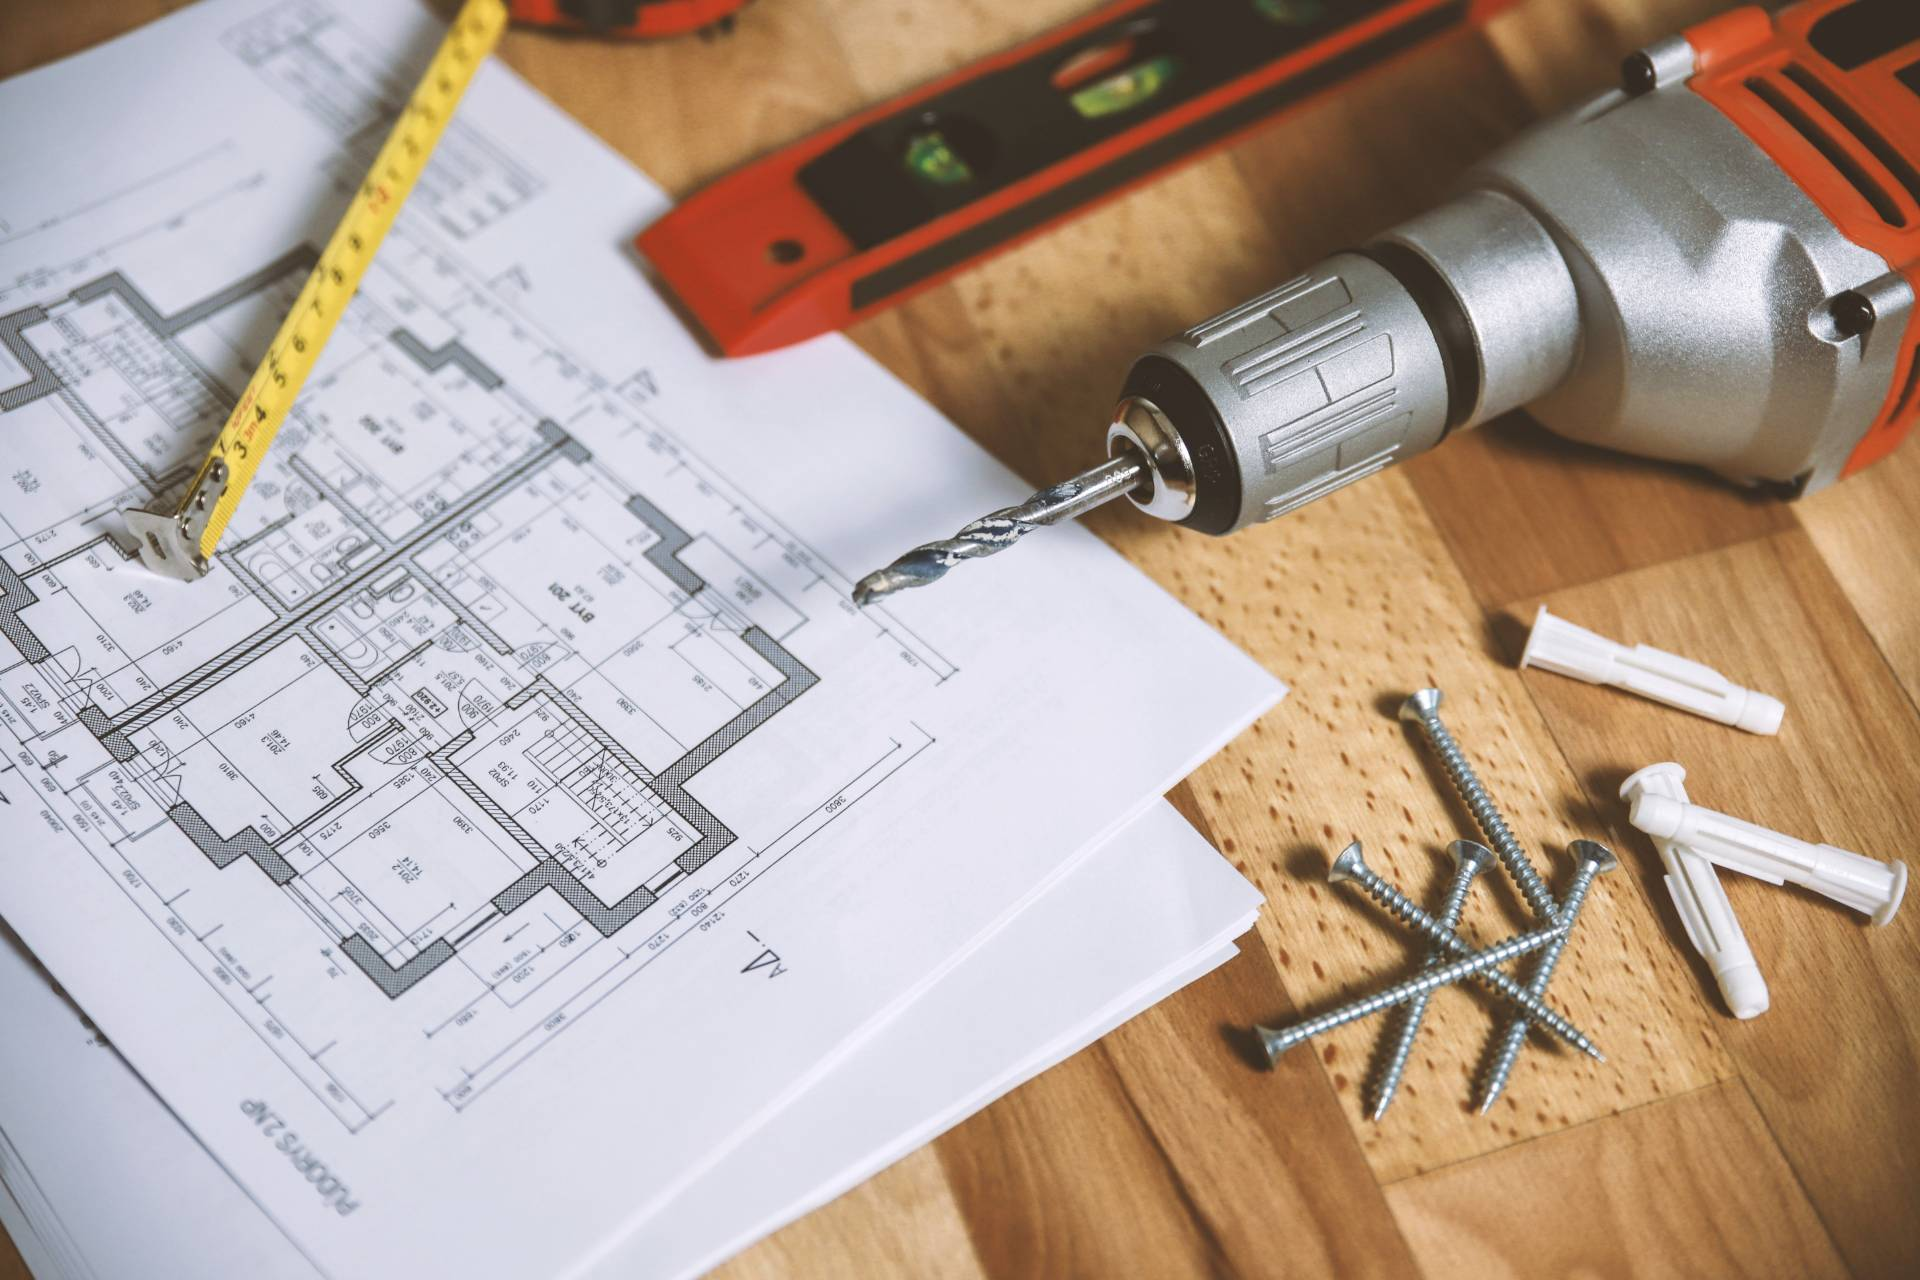 Top 6 Home Improvements To Add Value To Your Home